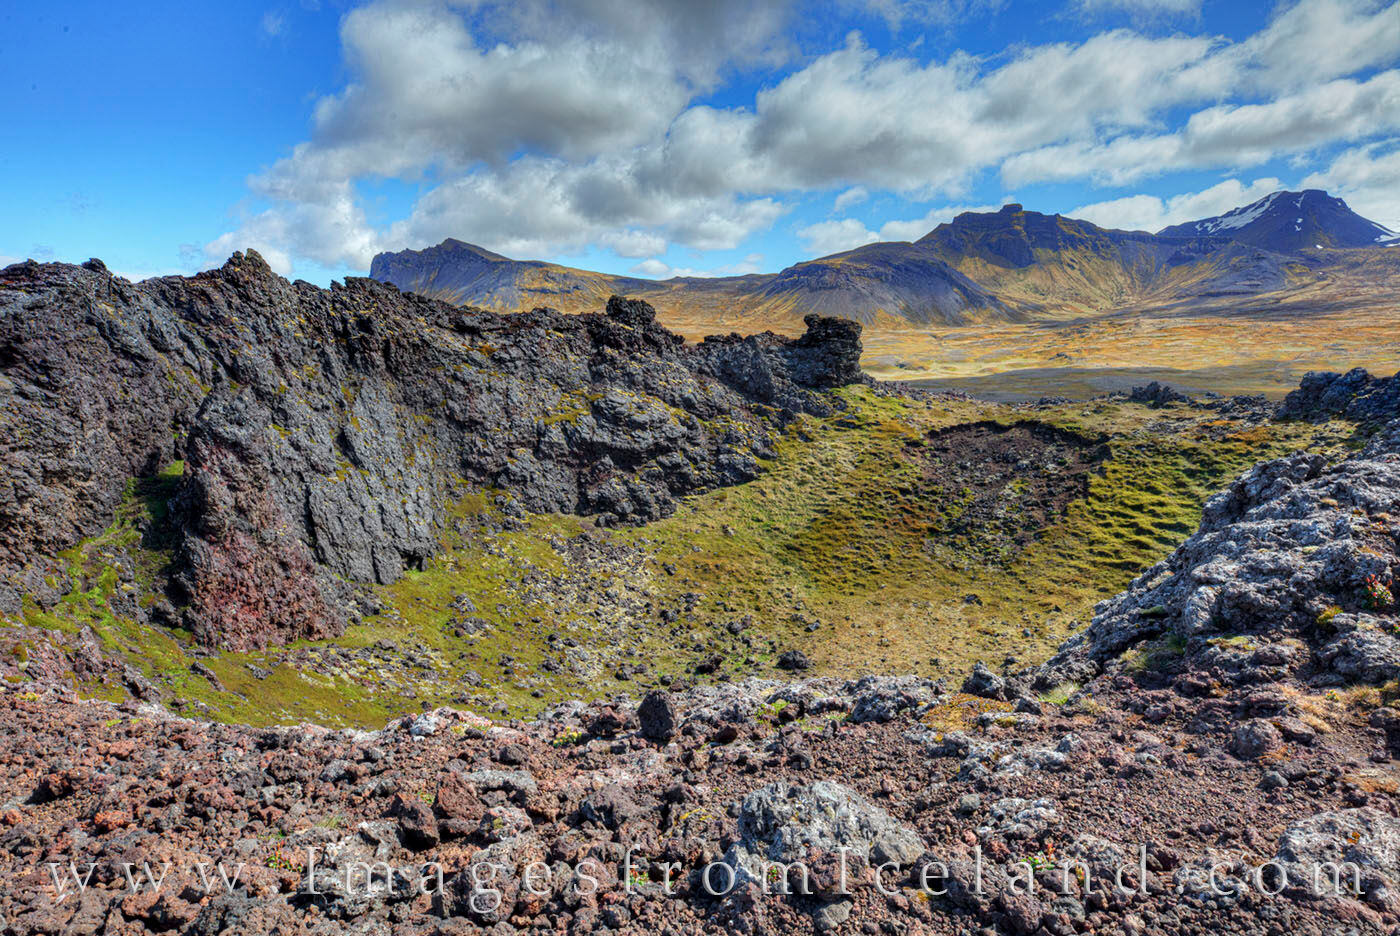 About 5.5 miles south of Hellissandur in the Snæfellsnes Peninsula, Saxhóll Crater is one of the best examples of an extinct...